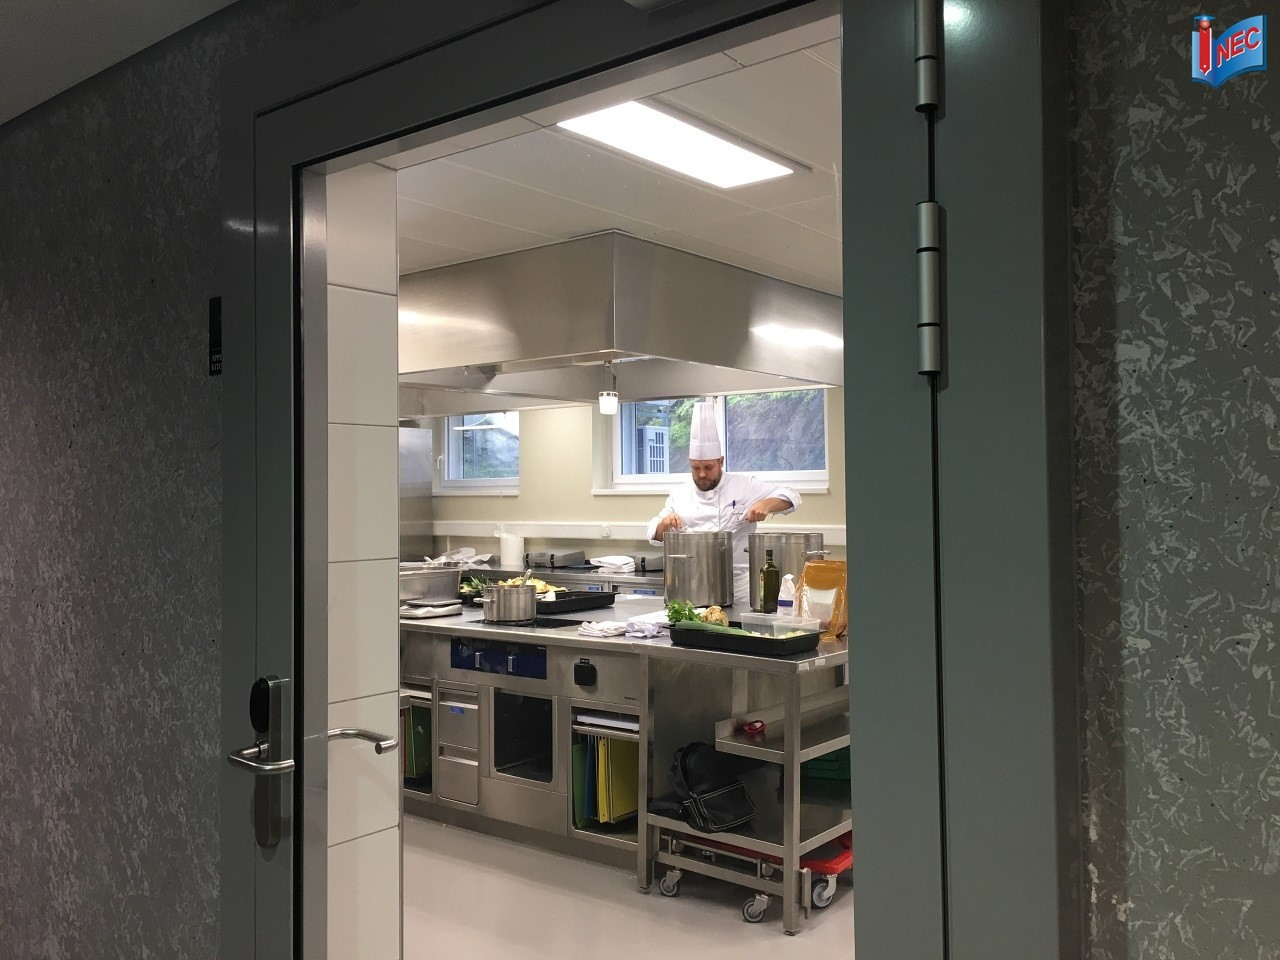 Culinary Arts Academy Switzerland tại Le Bouveret